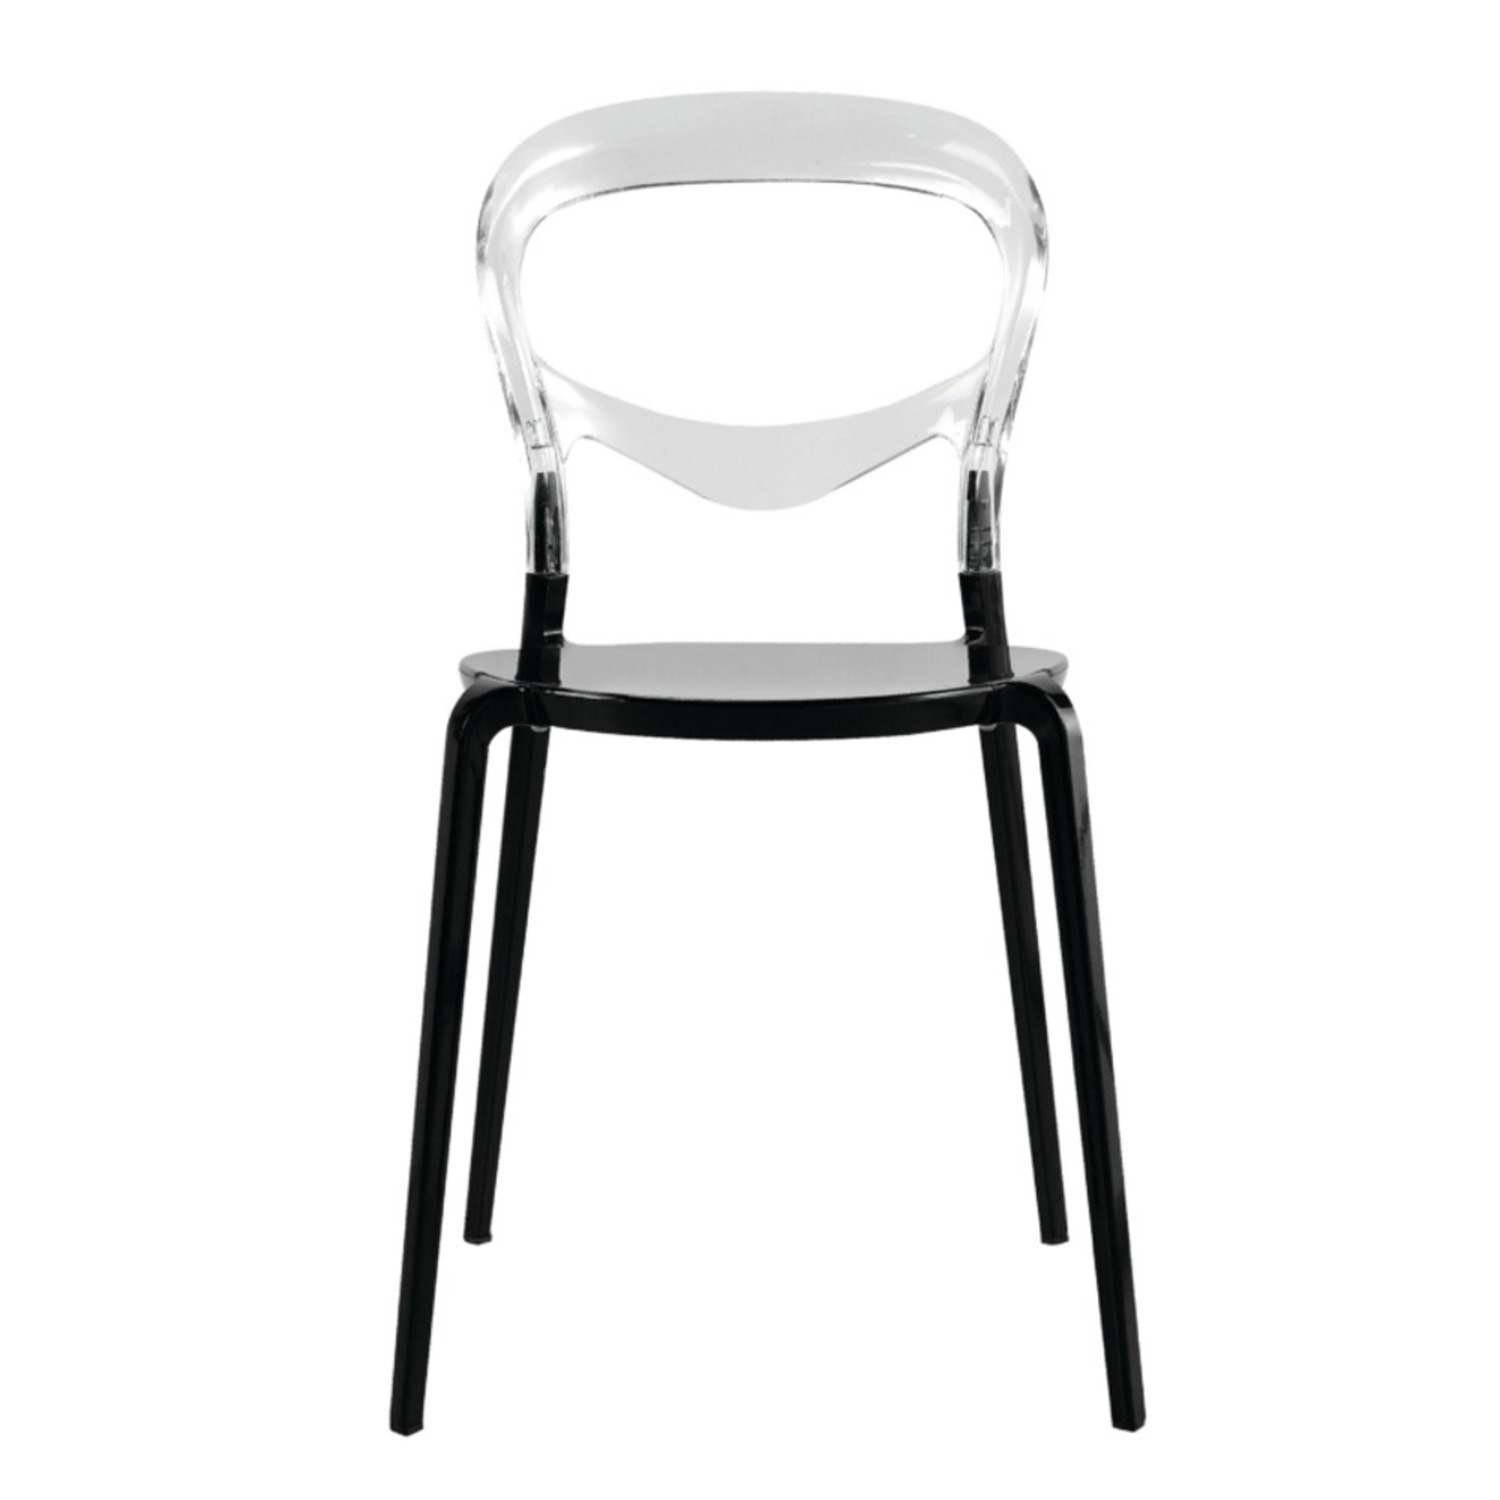 Dining Chair In Transparent Acrylic Finish - image-0